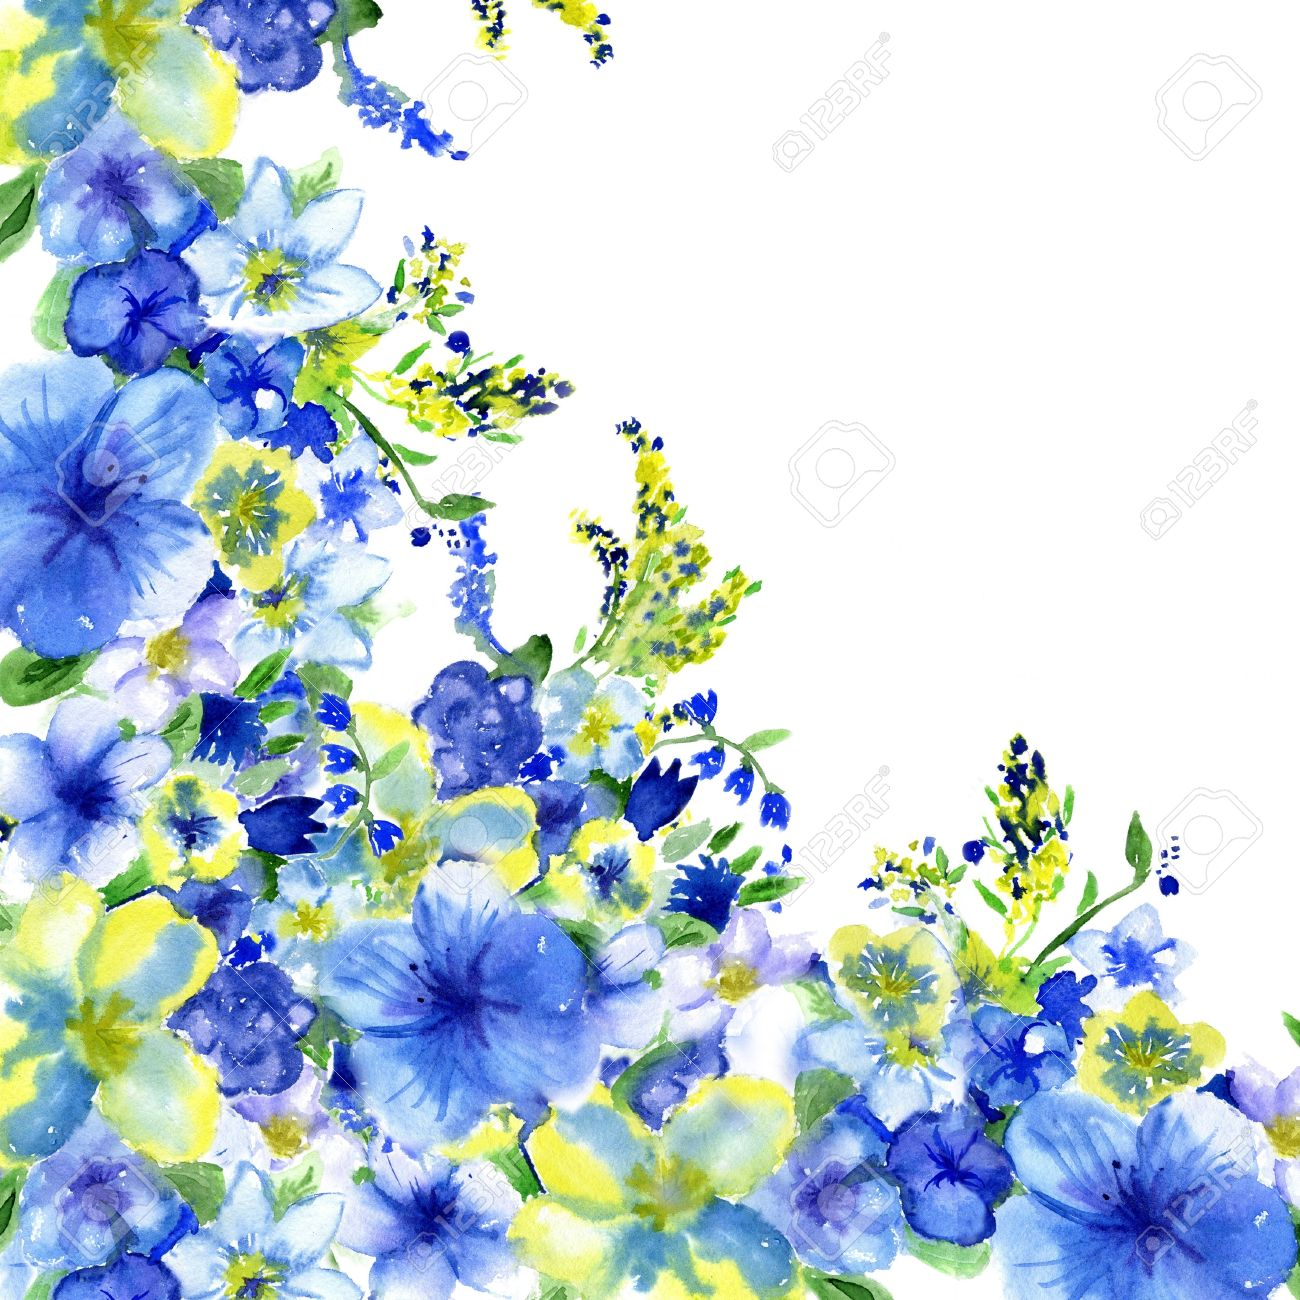 Watercolor dark blue and yellow flowers on a white background stock stock photo watercolor dark blue and yellow flowers on a white background mightylinksfo